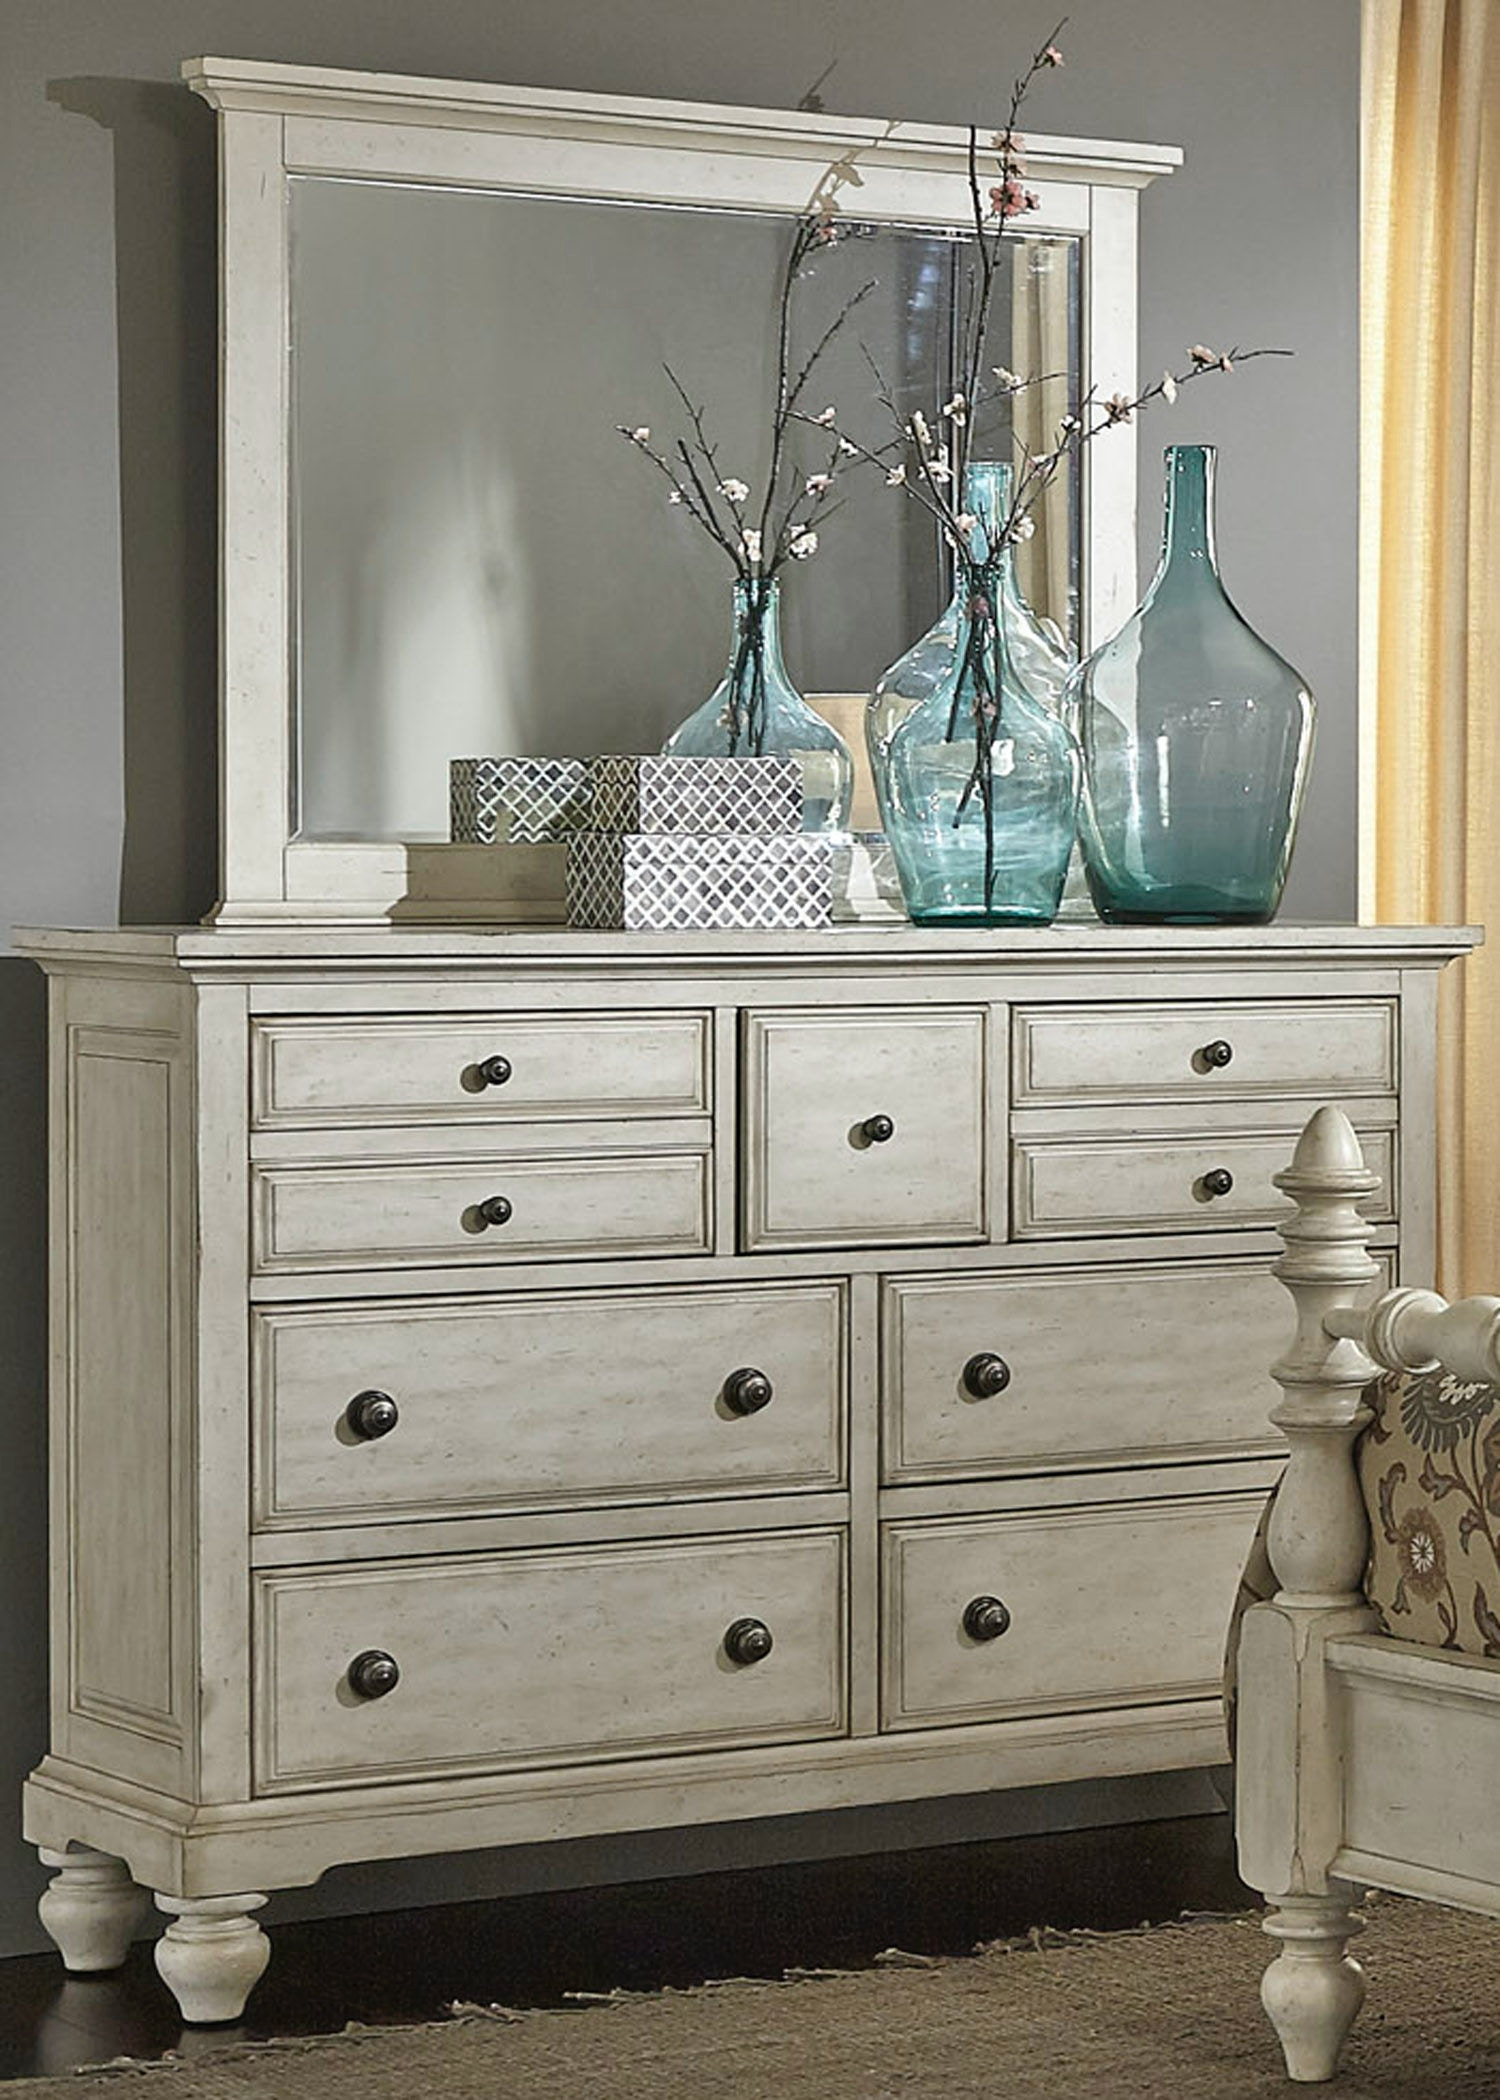 Incroyable Liberty Furniture Dresser And Mirror 697 BR DM ...